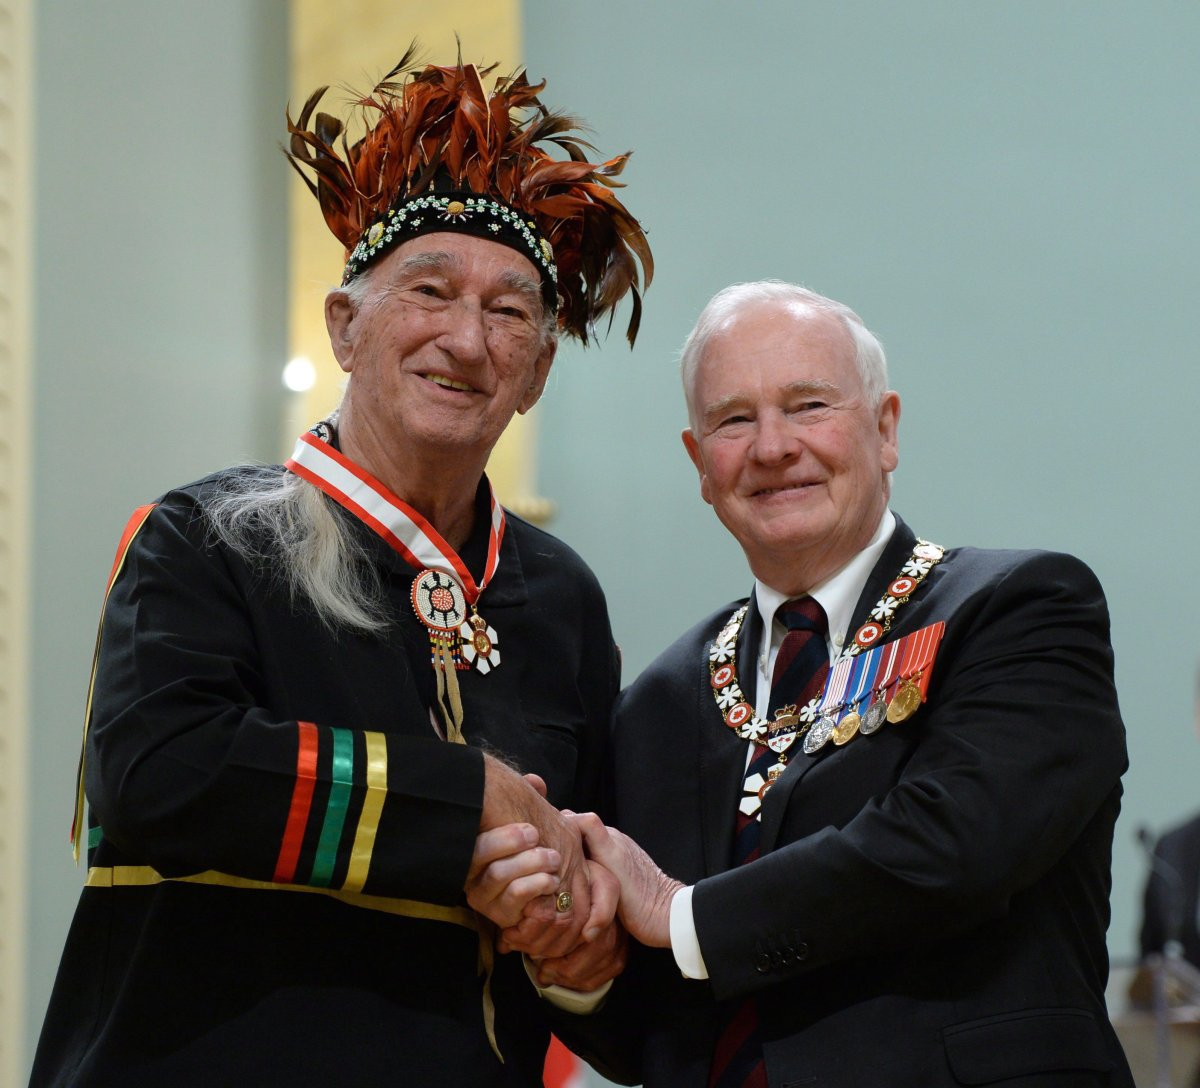 Magella (Max) Gros-Louis of Wendake, Que., gets invested as an Officer of the Order of Canada by Governor General David Johnston during a ceremony at Rideau Hall in Ottawa on Friday, Feb. 12, 2016.